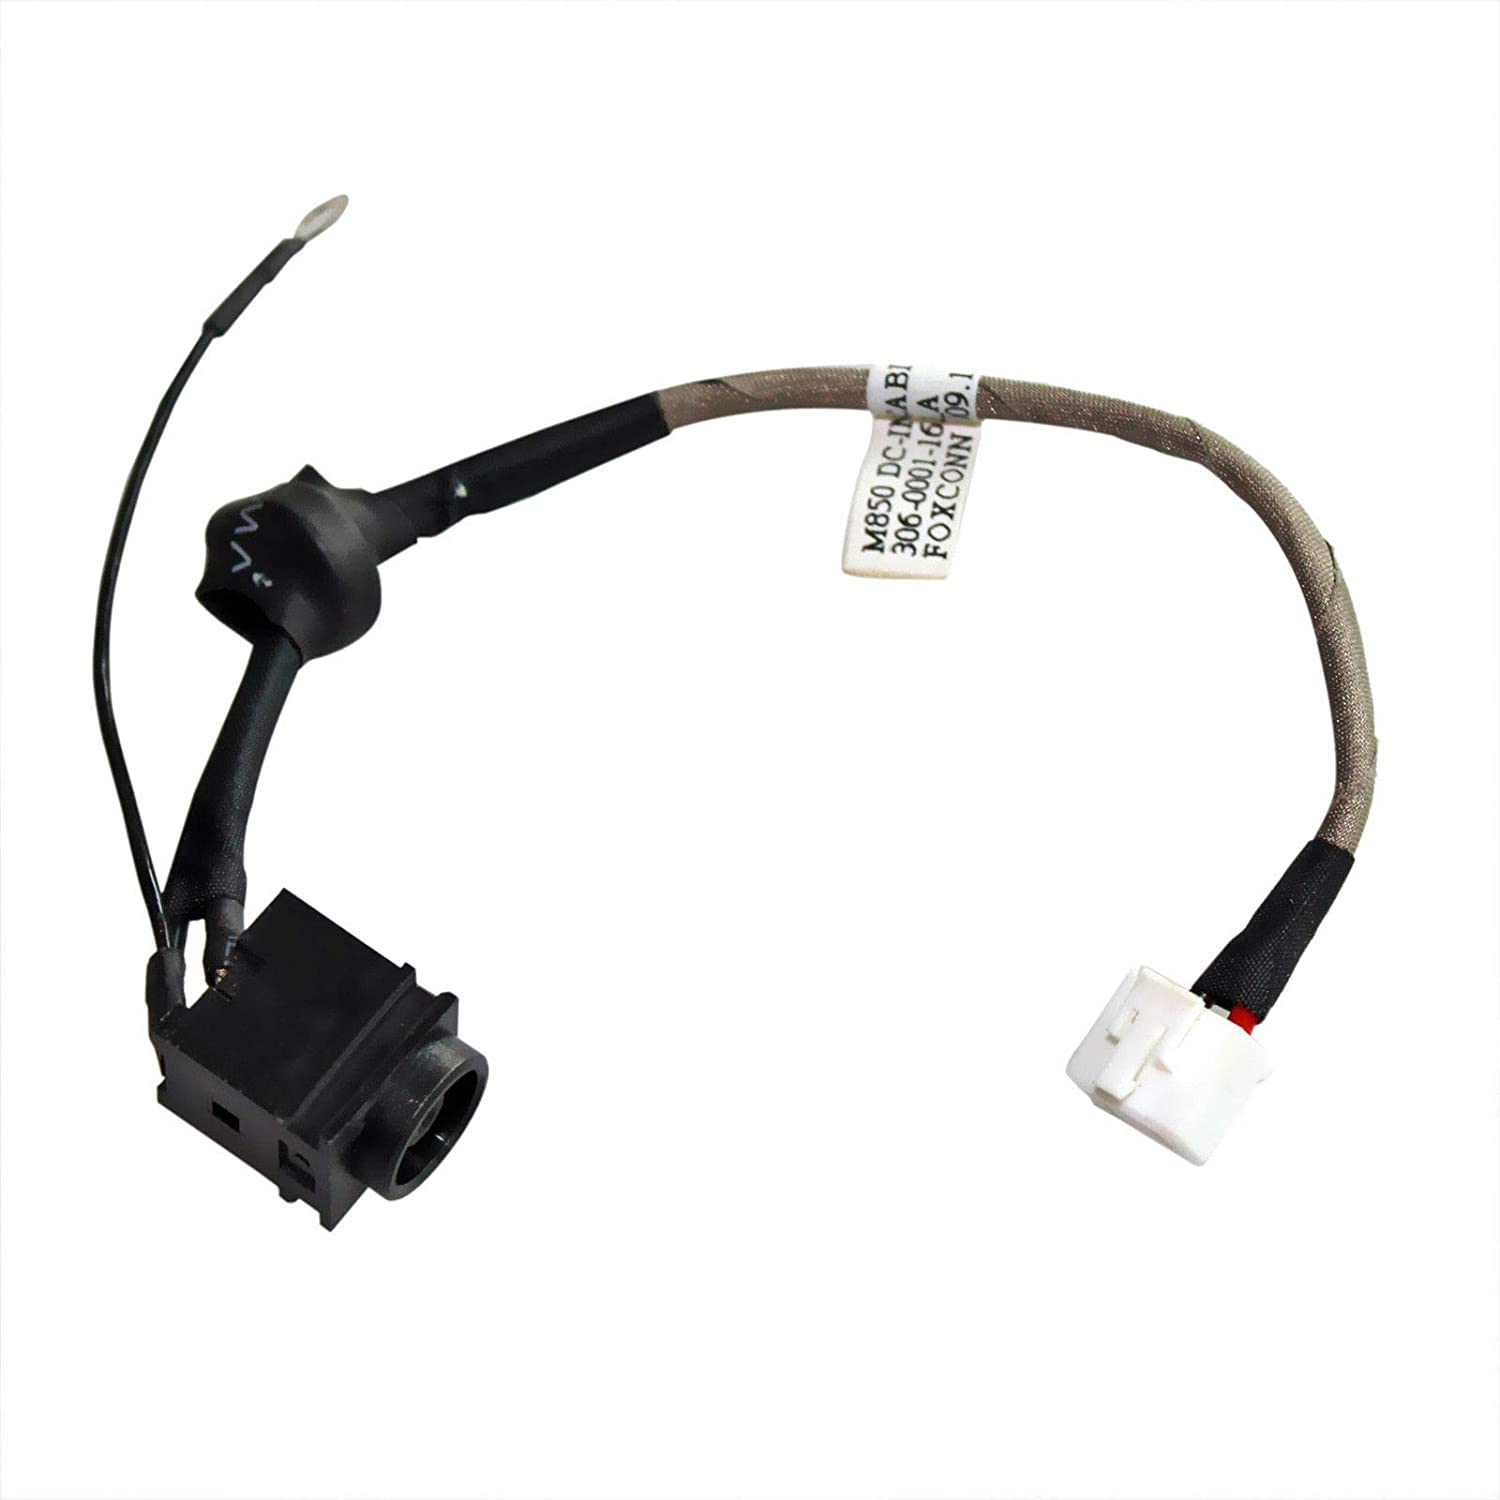 DC POWER JACK Socket Cable Connector For Sony VAIO PCG-7192M PCG-7182L PCG-7192L